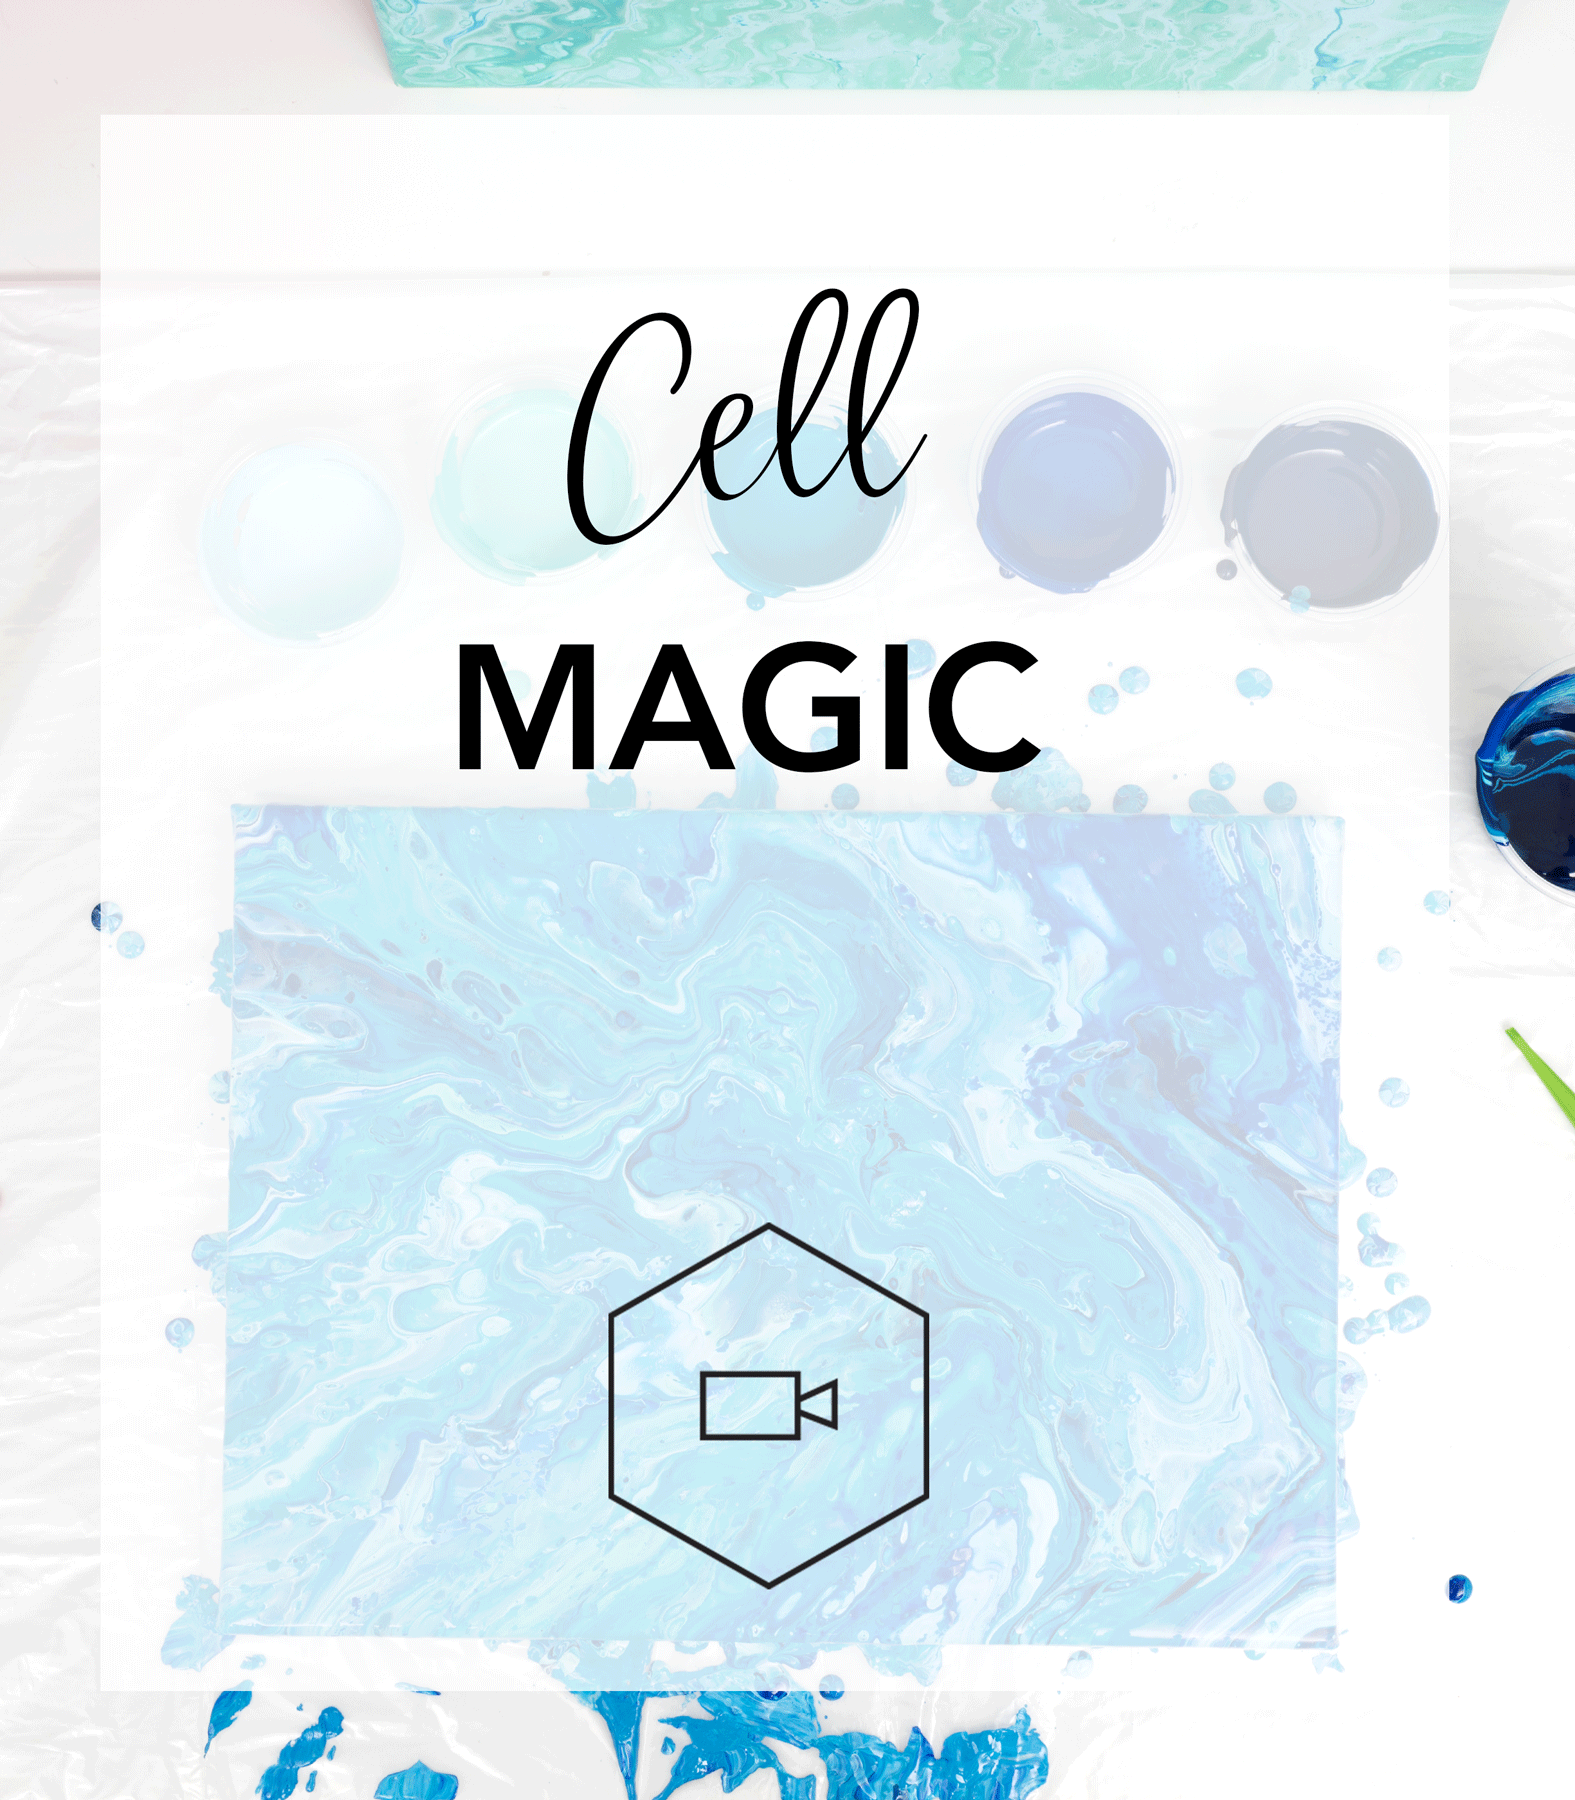 COLOR-POUR-CELL-MAGIC-VIDEO-GRAPHIC